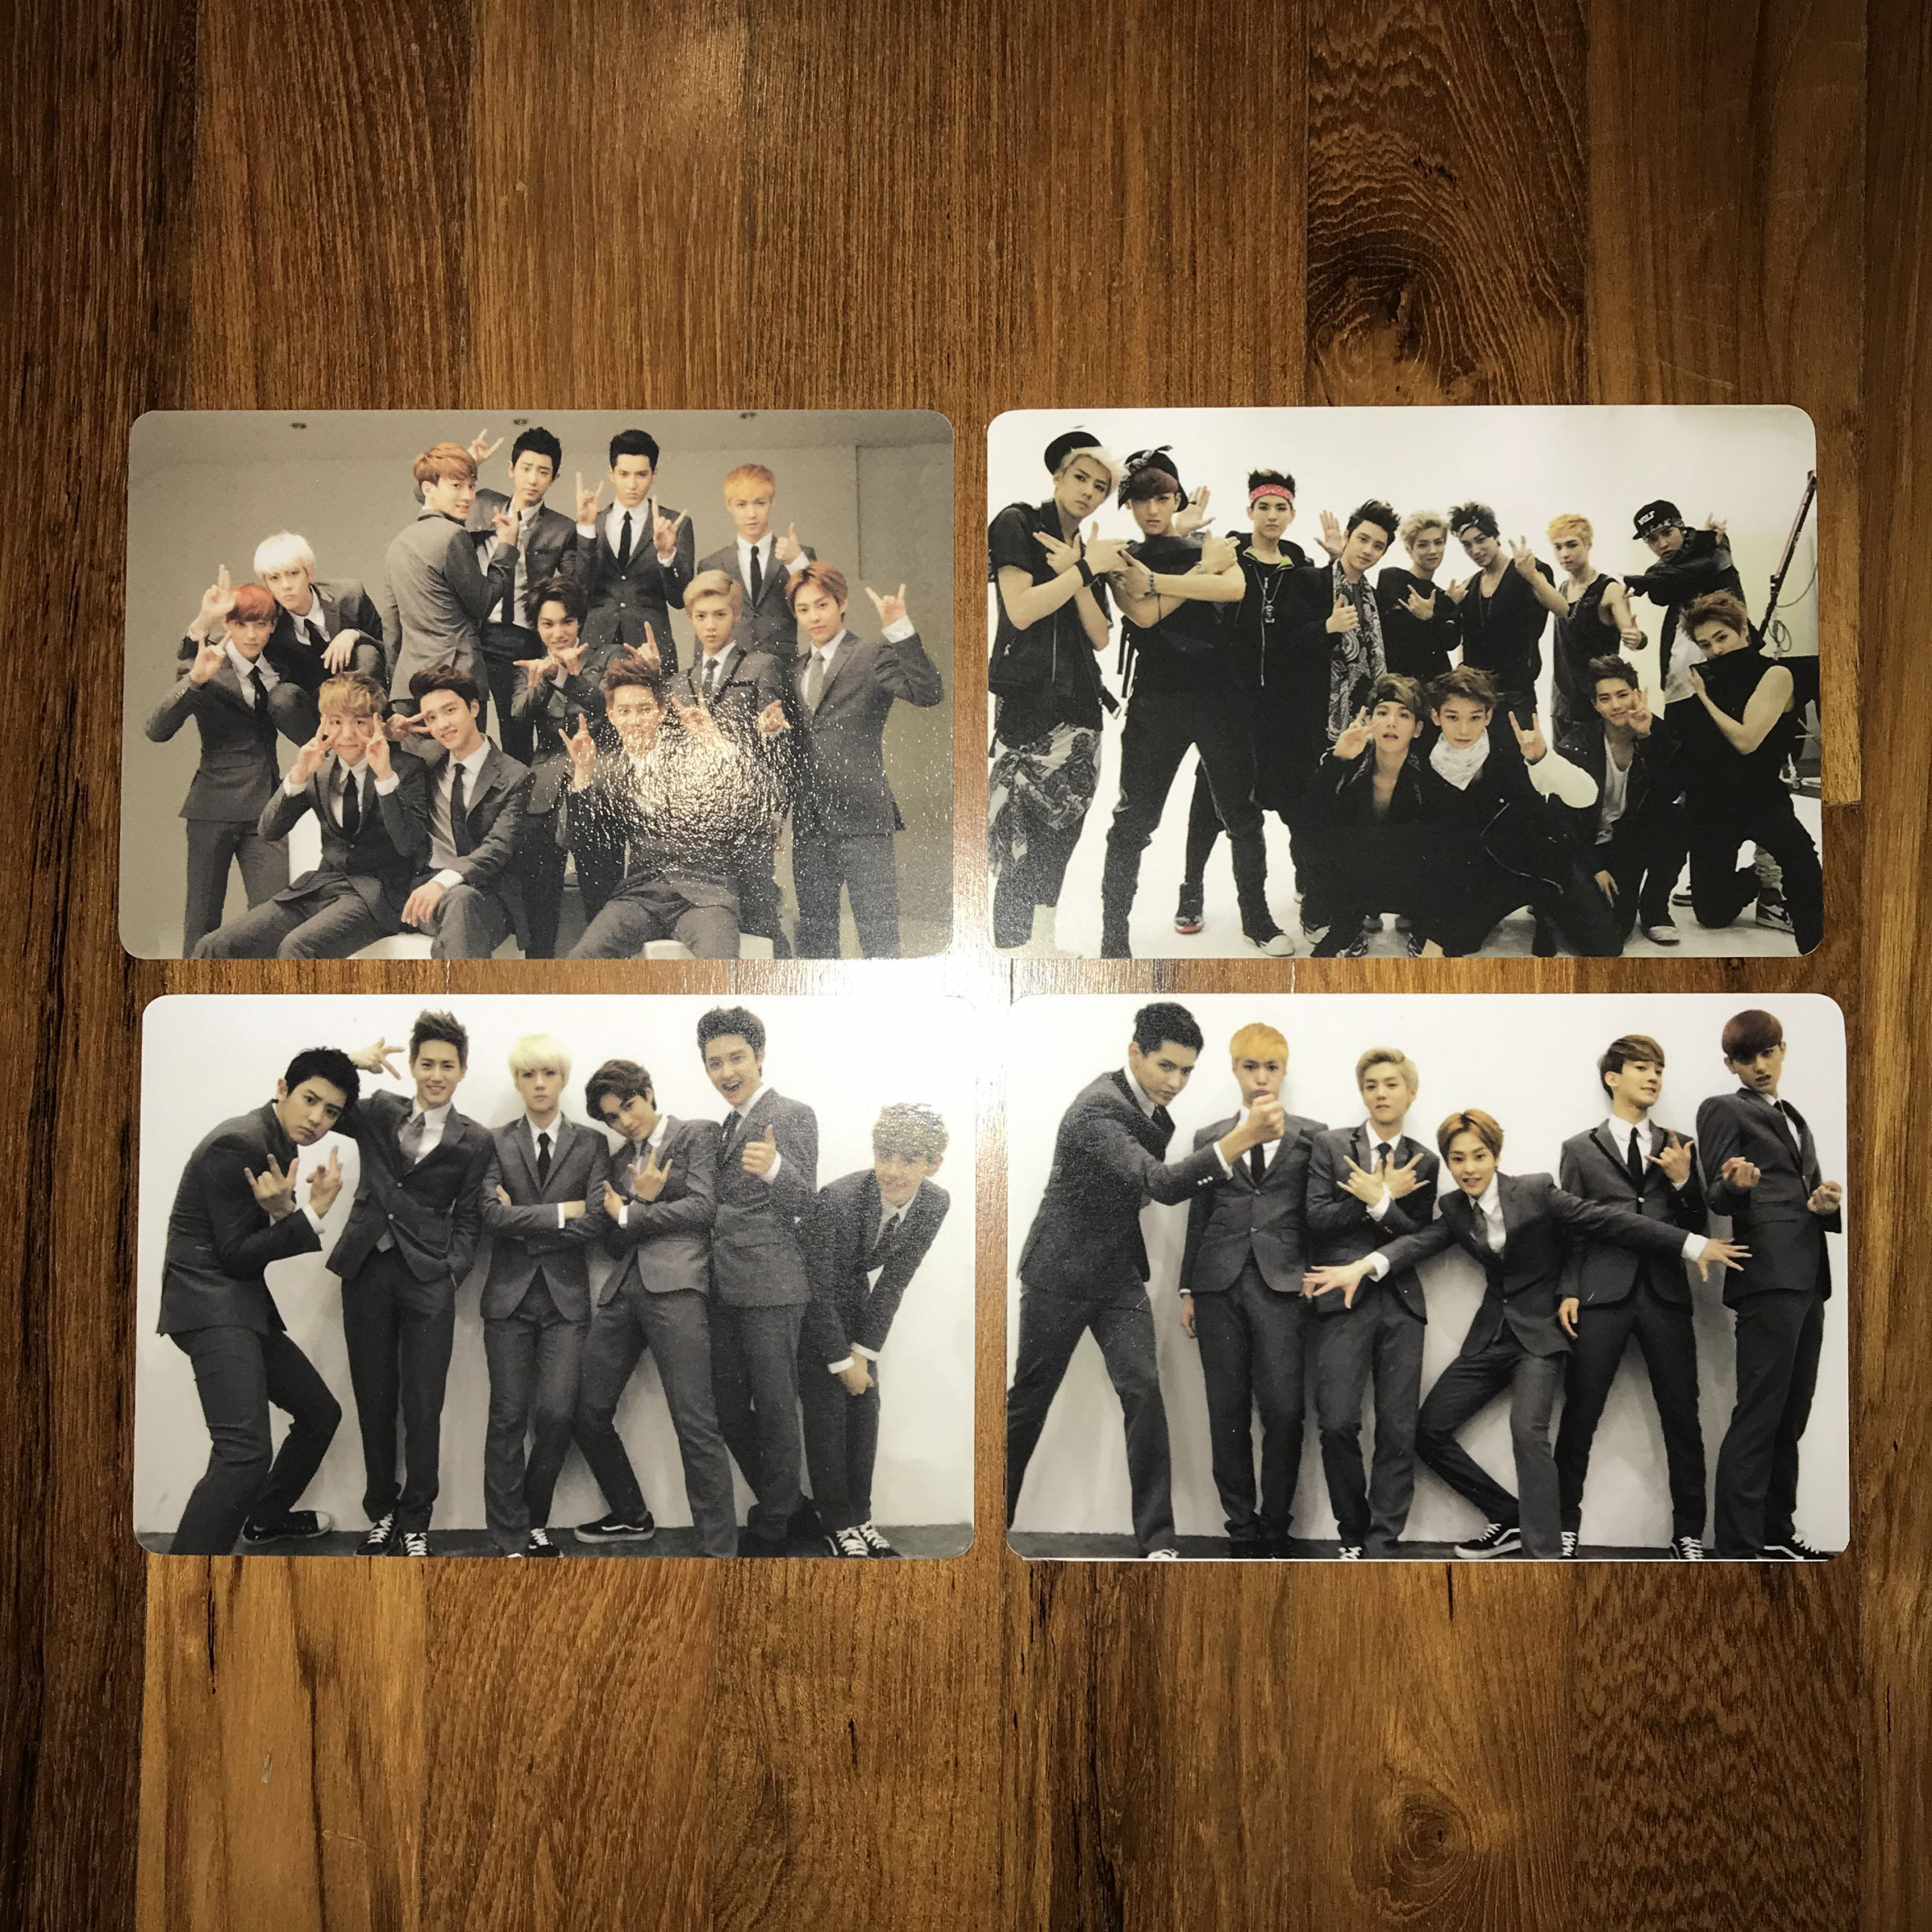 exo ot12 group unit pcs 088c8c8e